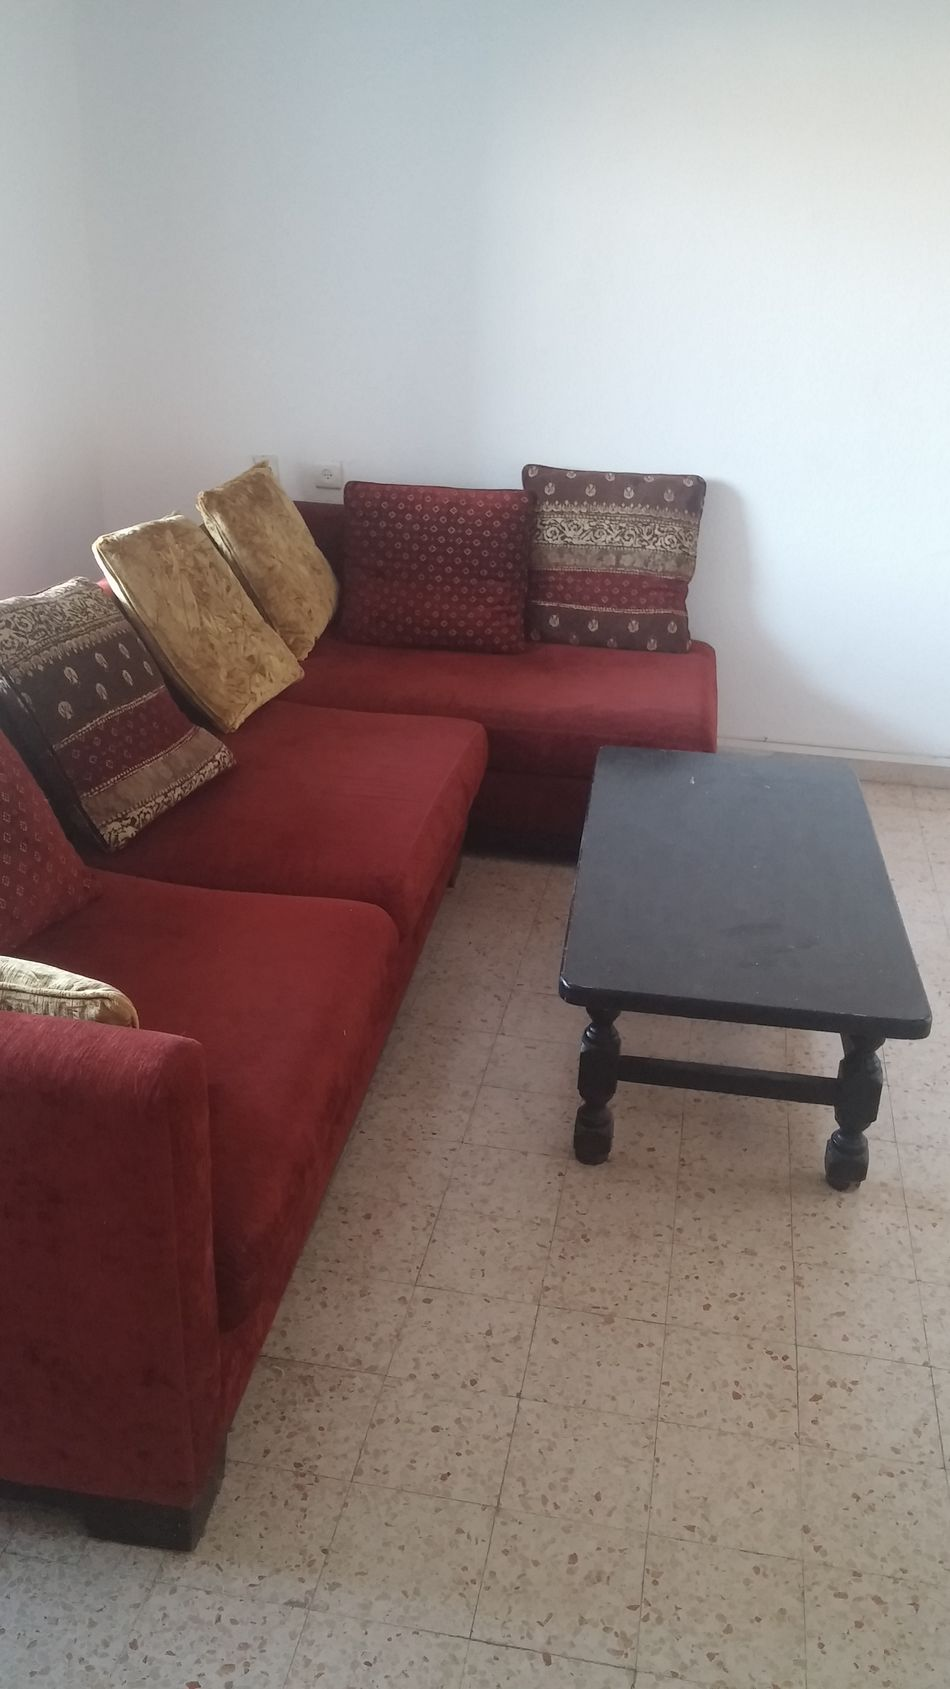 Place to rest Place To Rest Sofa Red Sofa Black Table